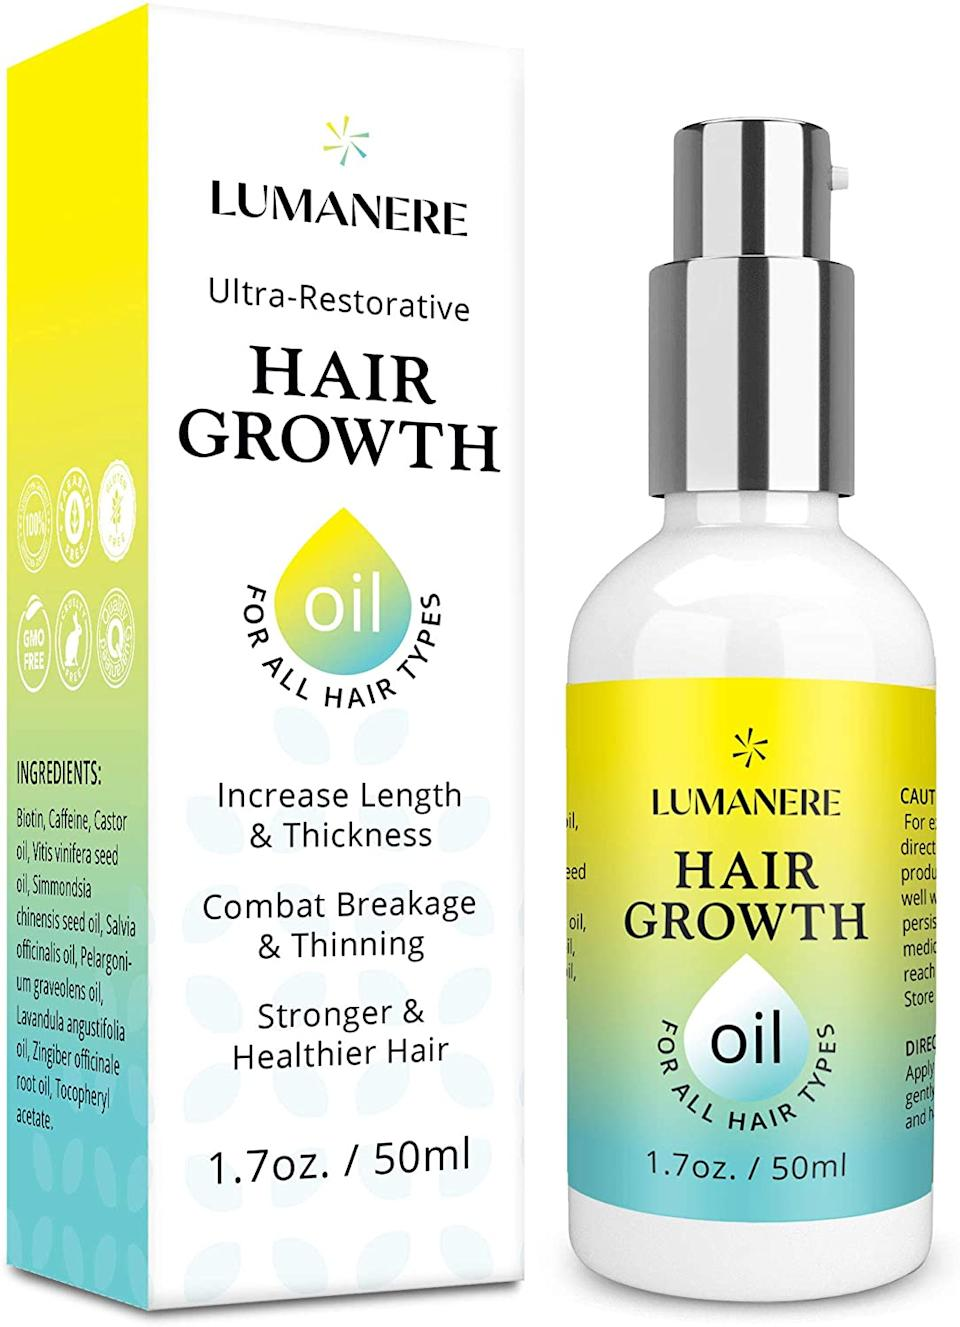 Lumanere Hair Growth Serum. Image via Amazon.